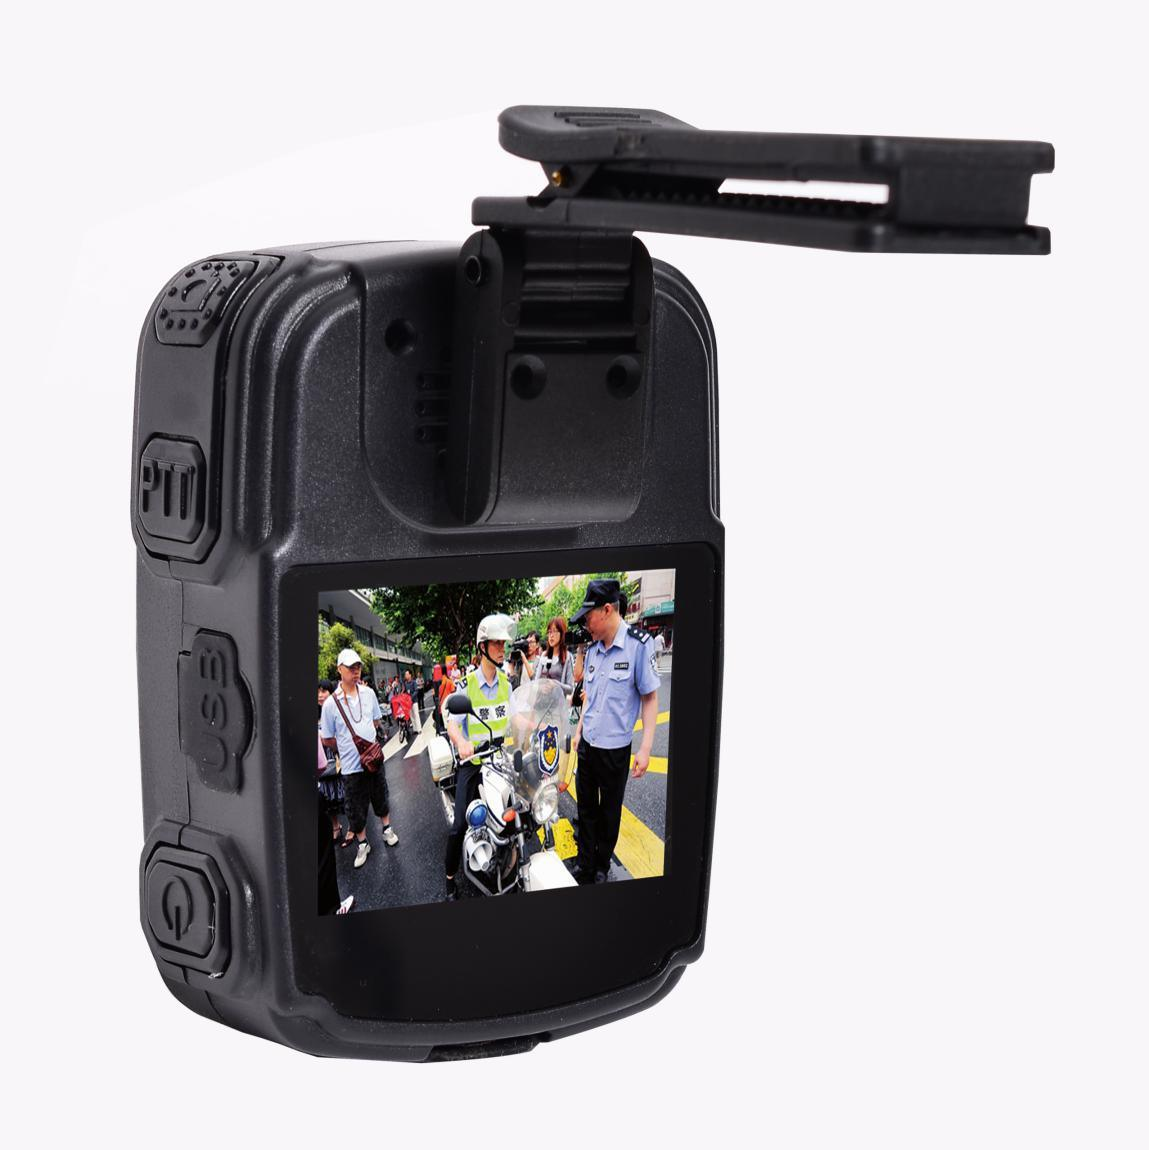 CCTV Wireless Security Guard Police Body Worn Camera